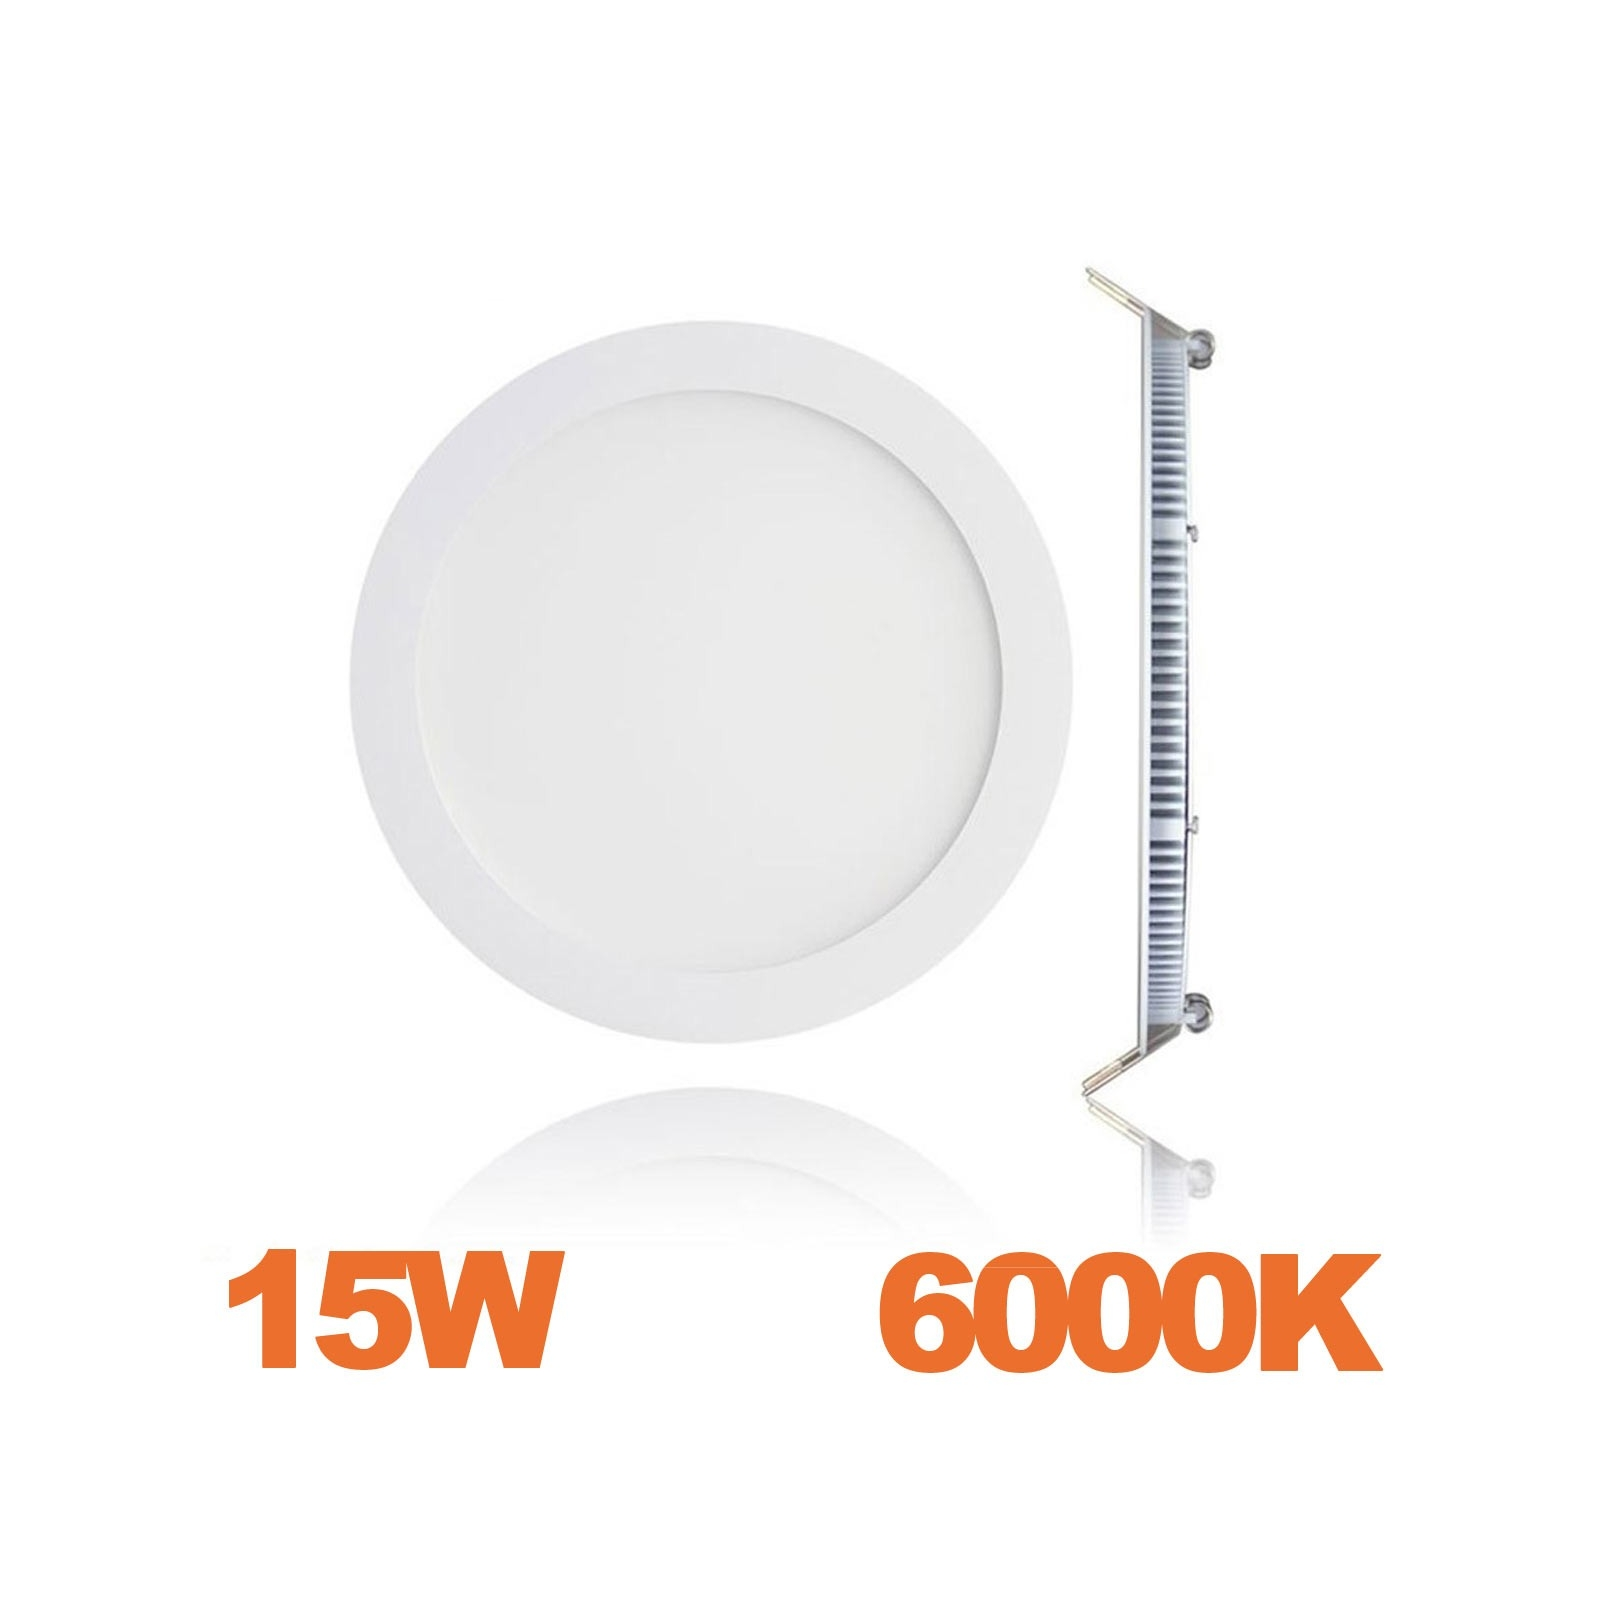 spot encastrable led downlight panel extra plat 15w blanc froid 6000k